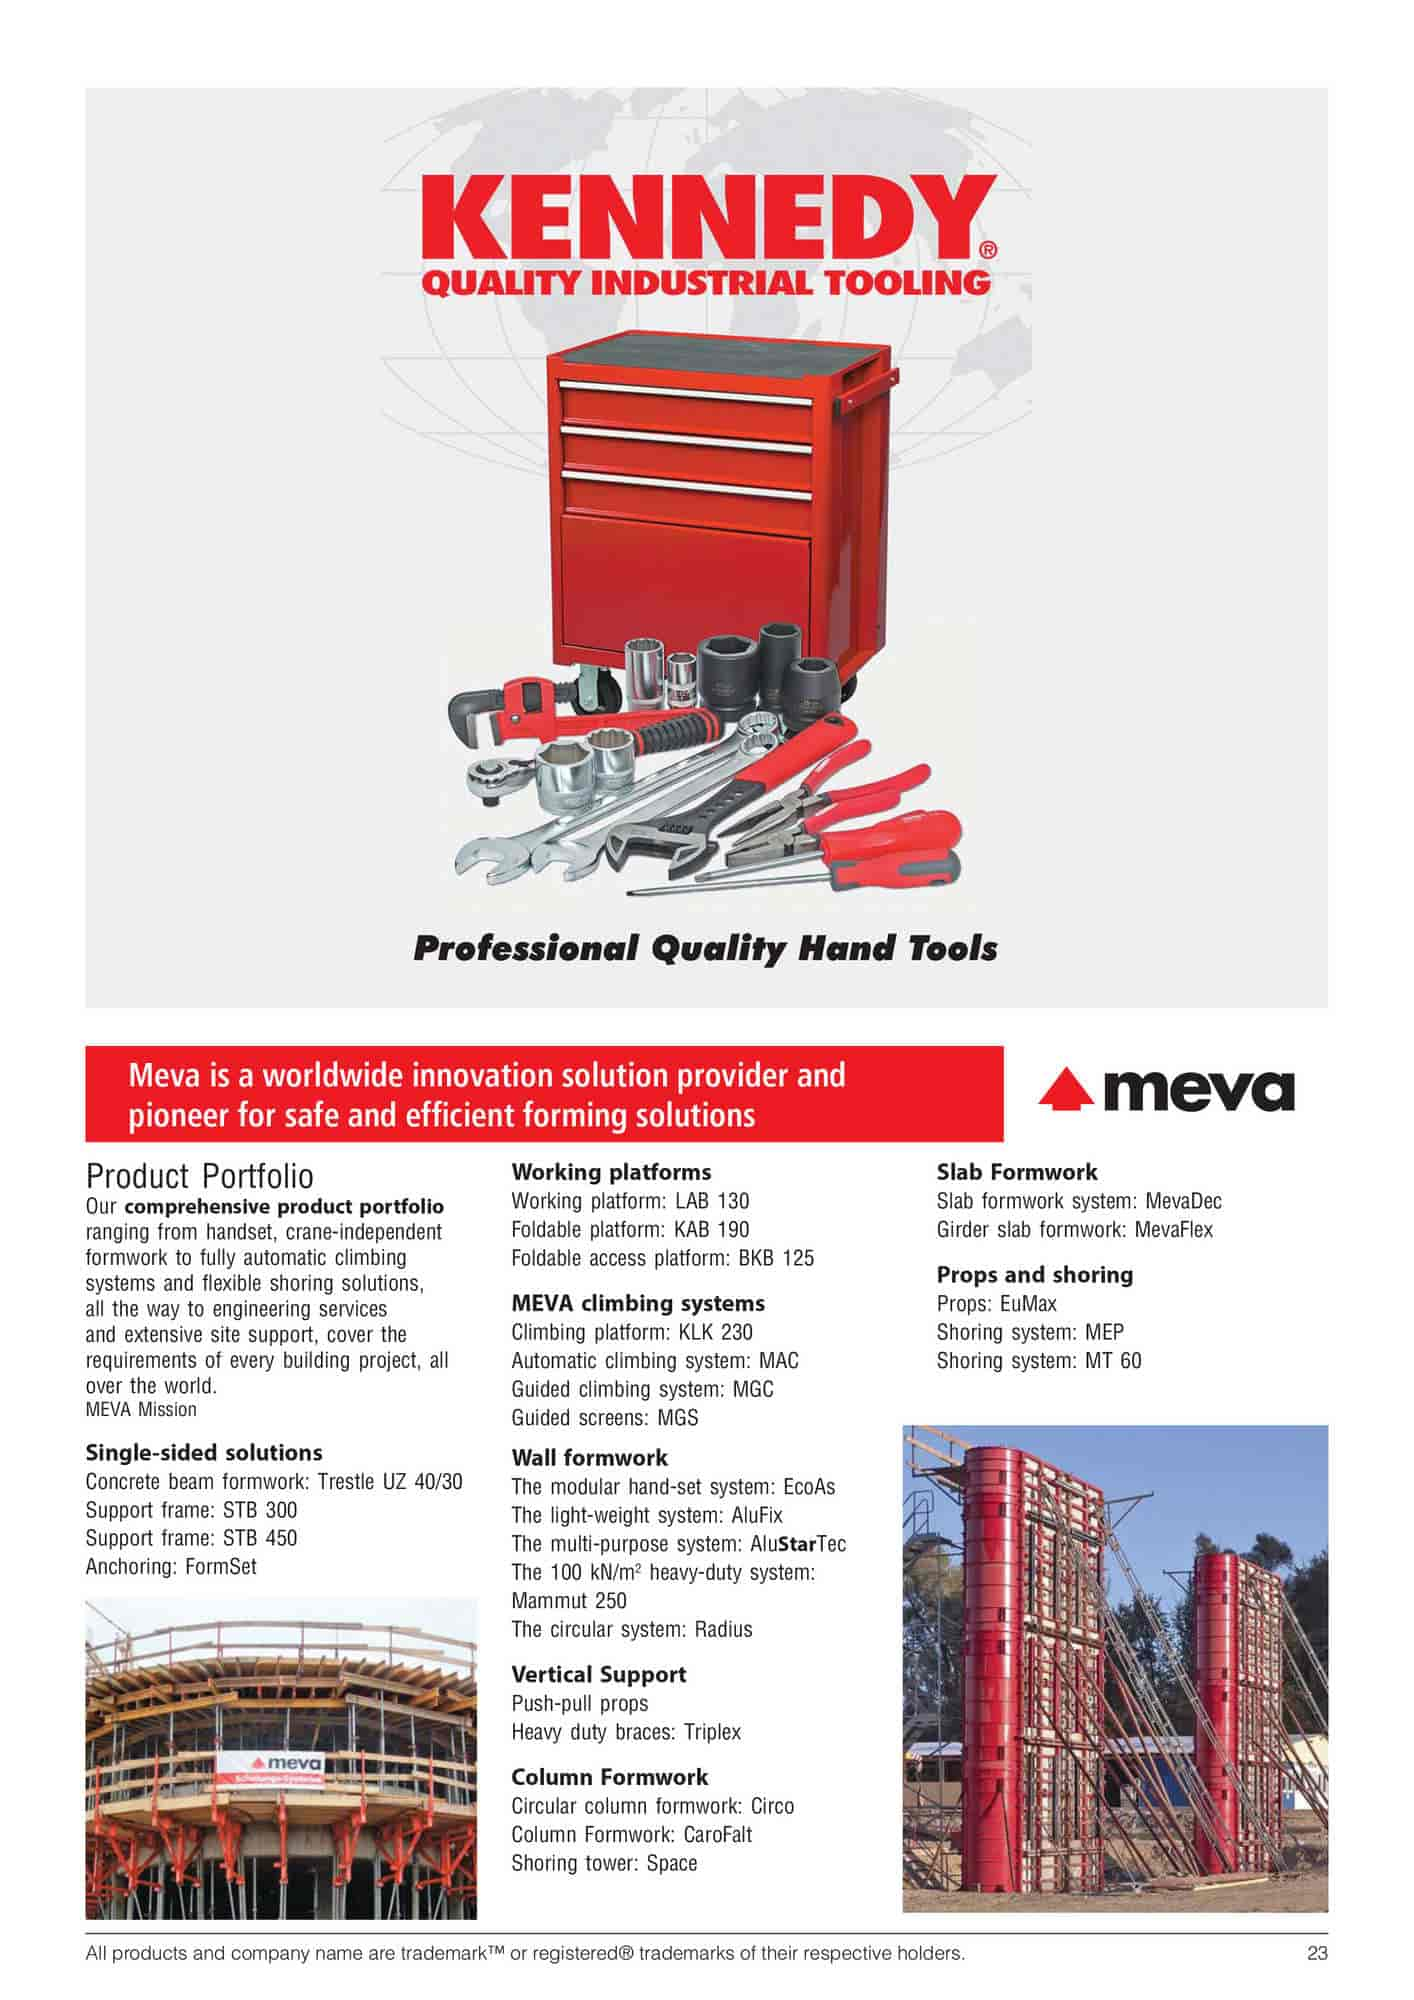 Mahavir Engimach Pvt Ltd, Paldi - Welding Machine Dealers in